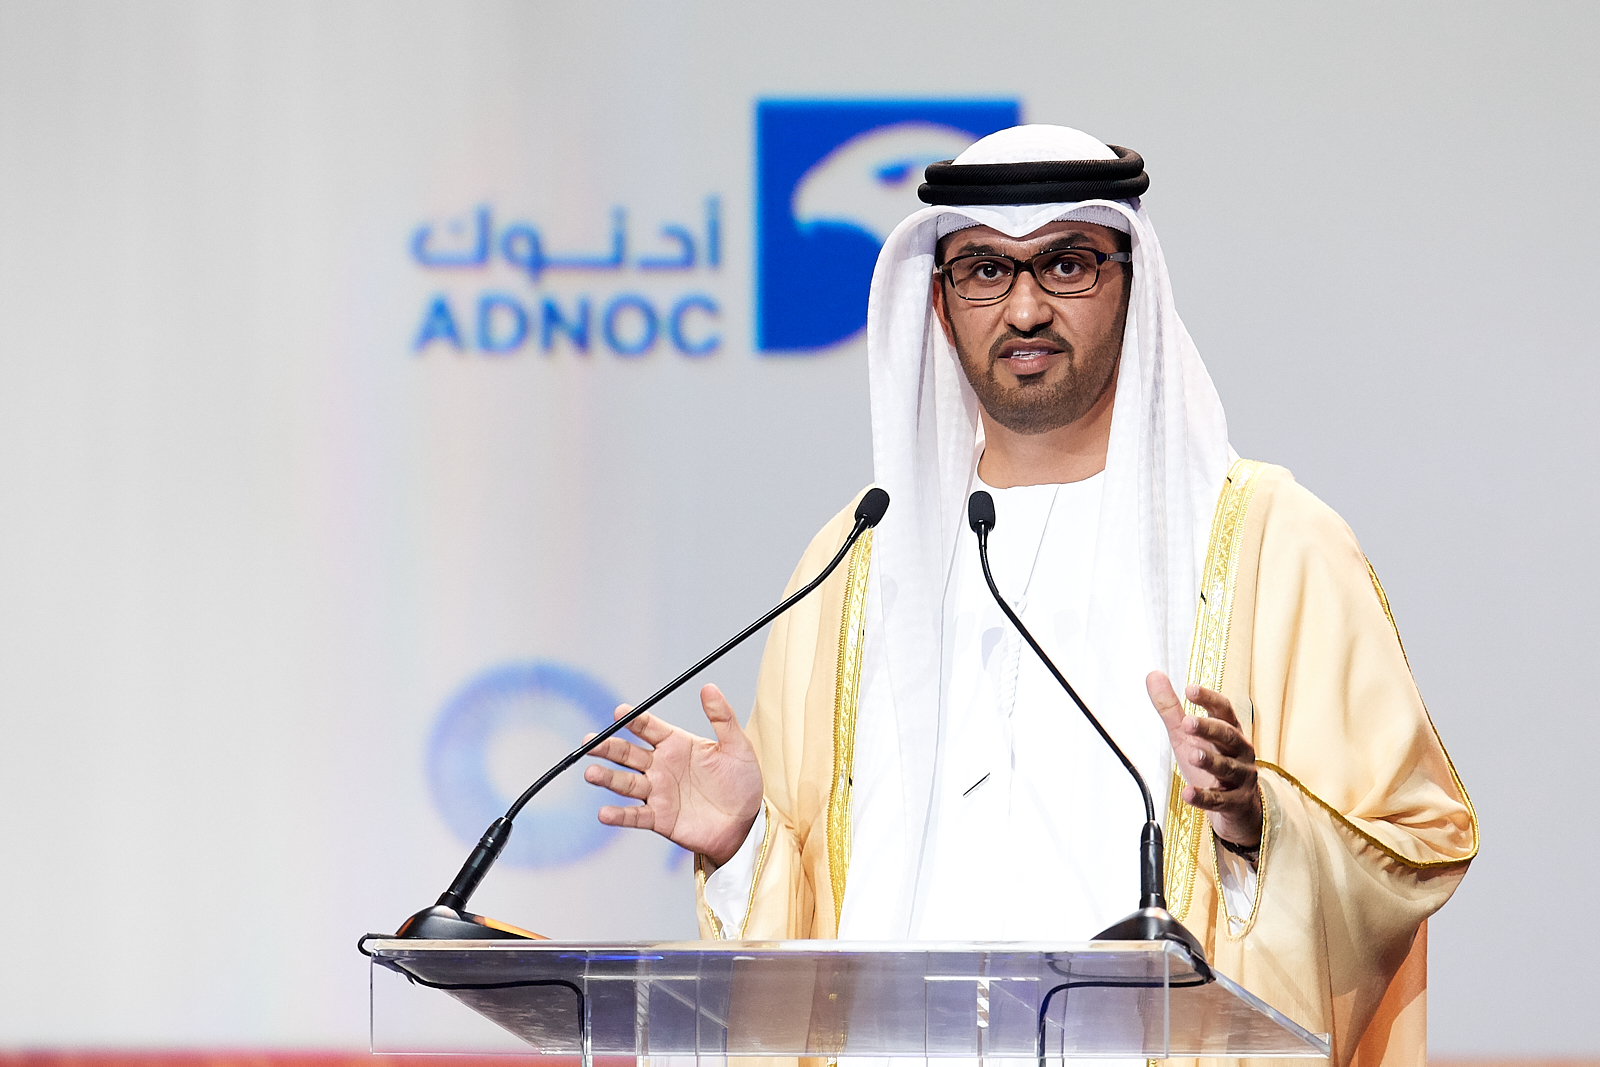 ADNOC CEO says oil and gas industry a critical enabler of